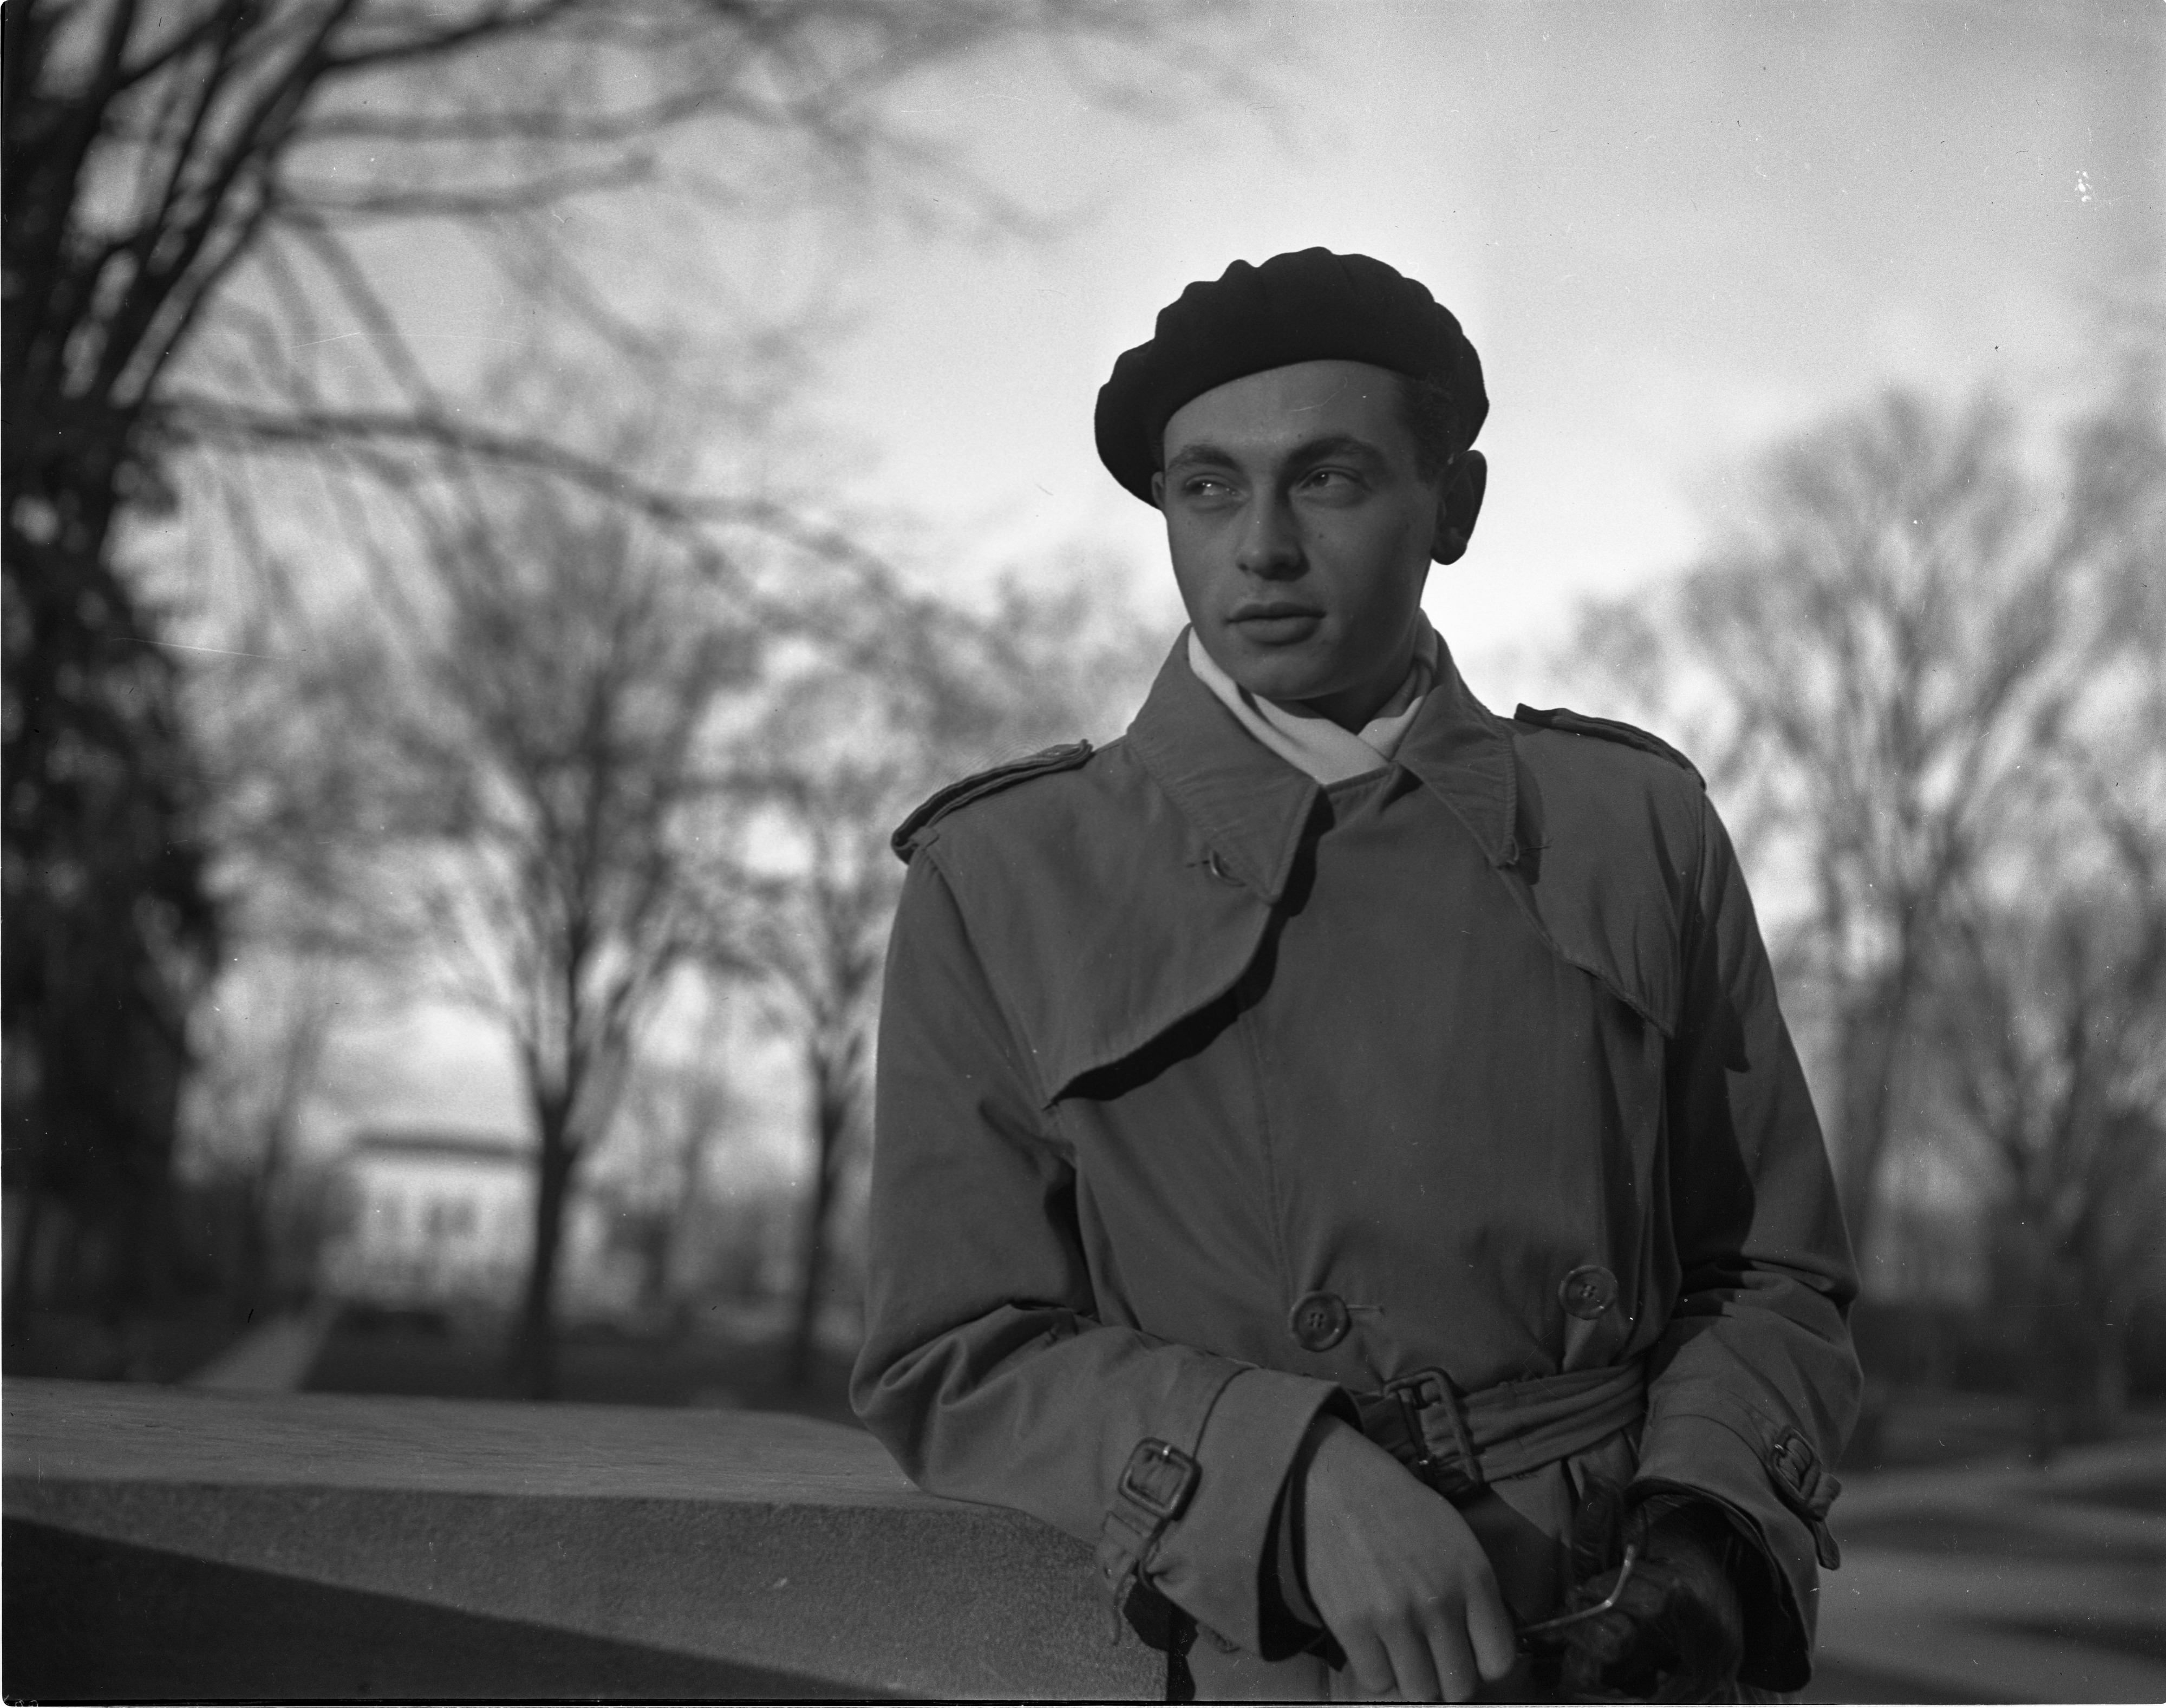 UM International Student And Refugee On Campus, December 1941 image